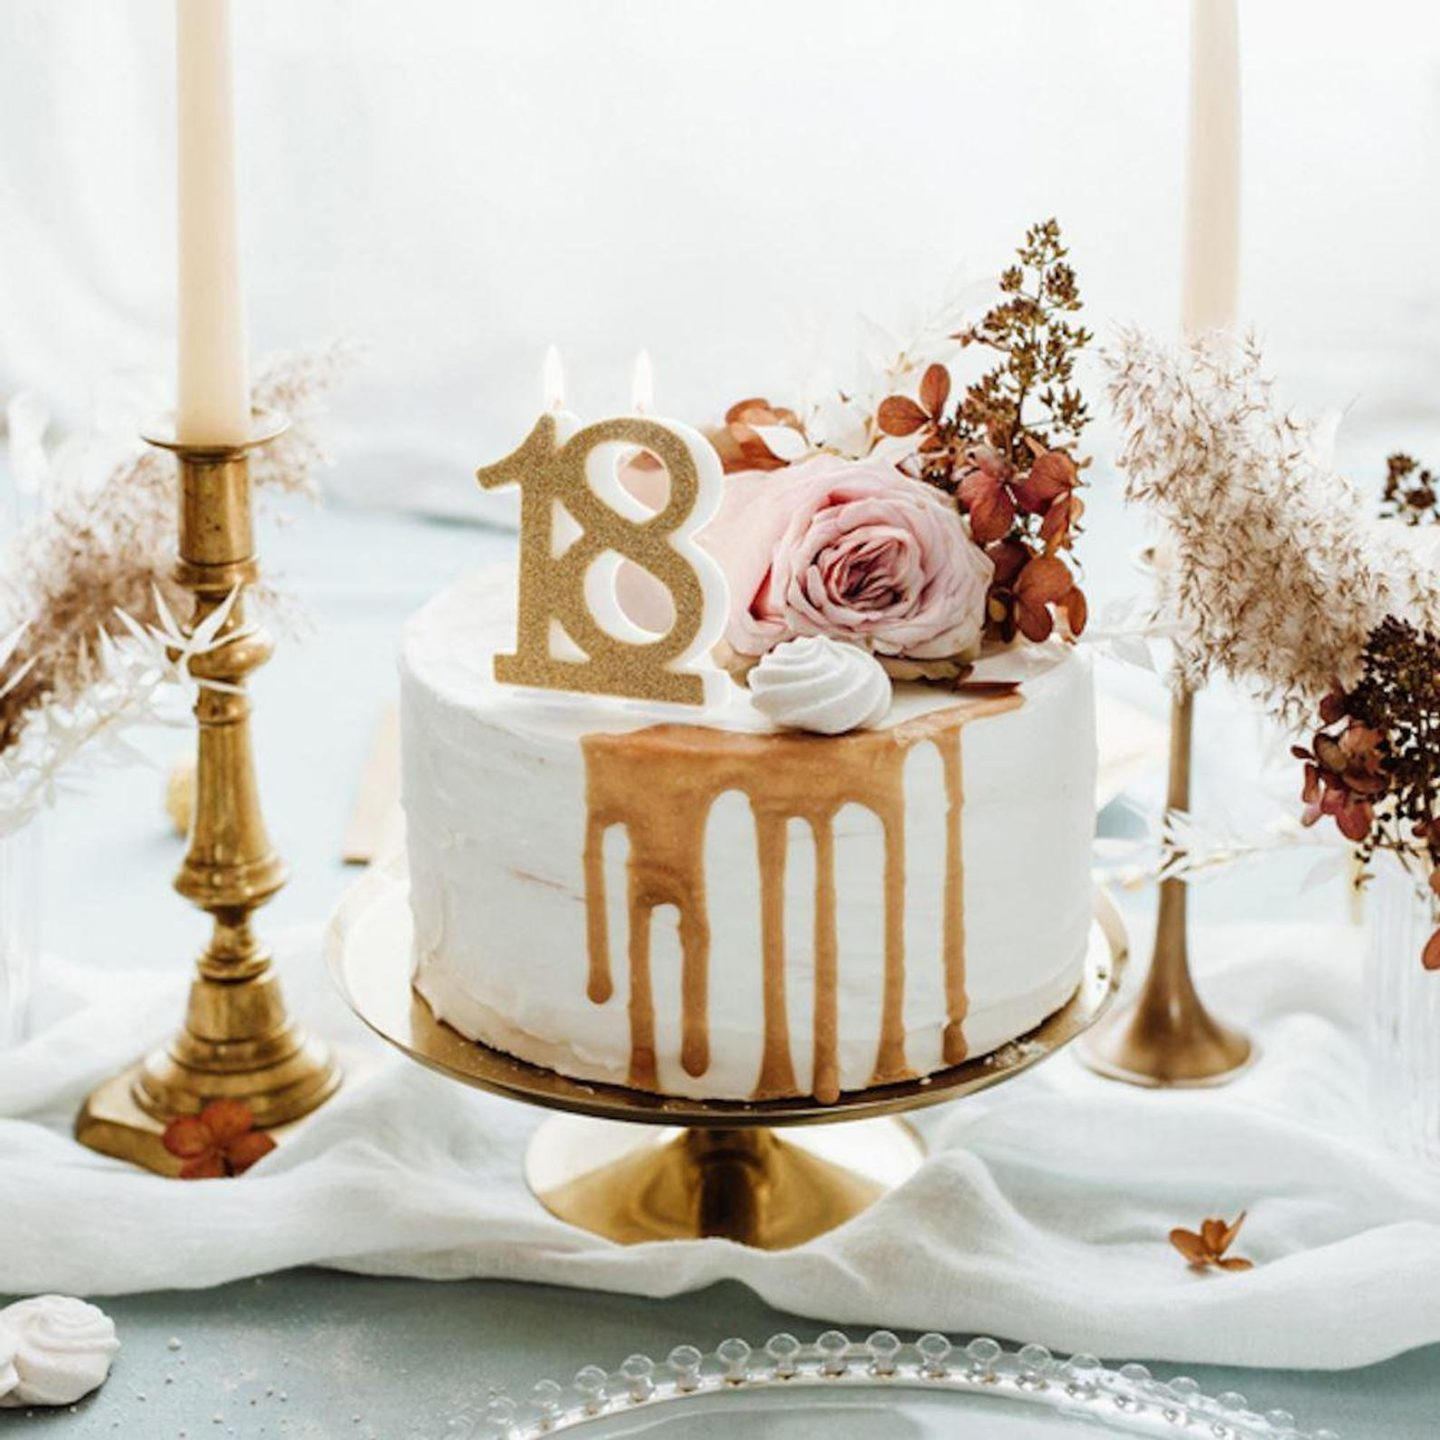 Candle decorated with gold cake